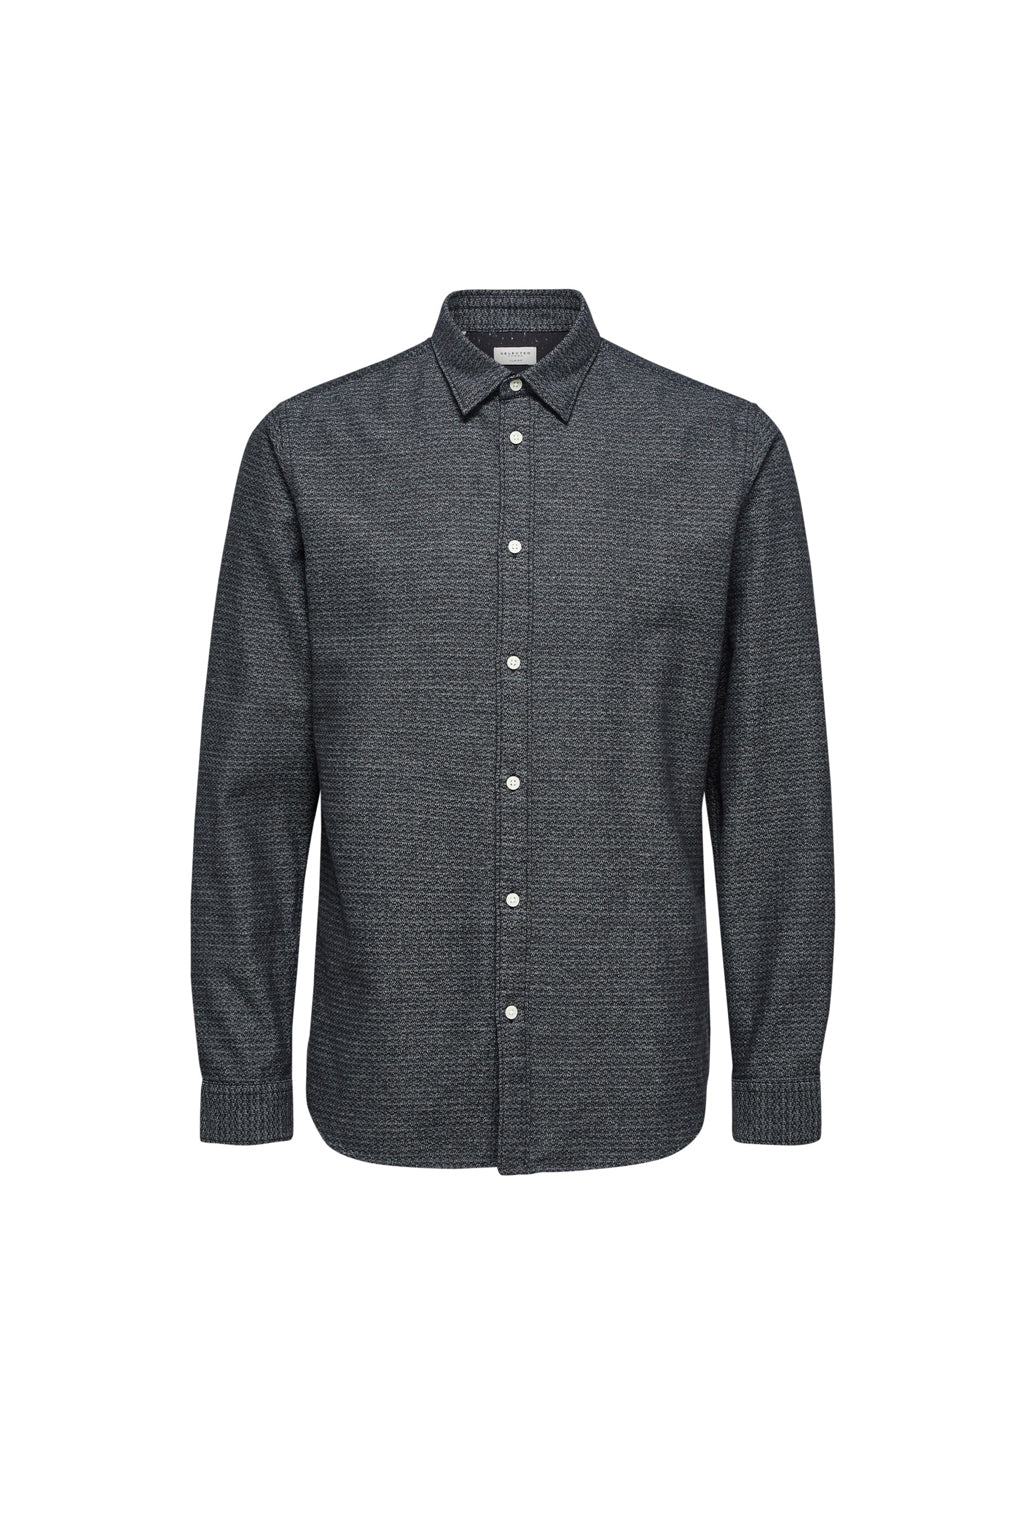 Andrew-Camp Shirt - Dark Grey Structure - Audace Copenhagen